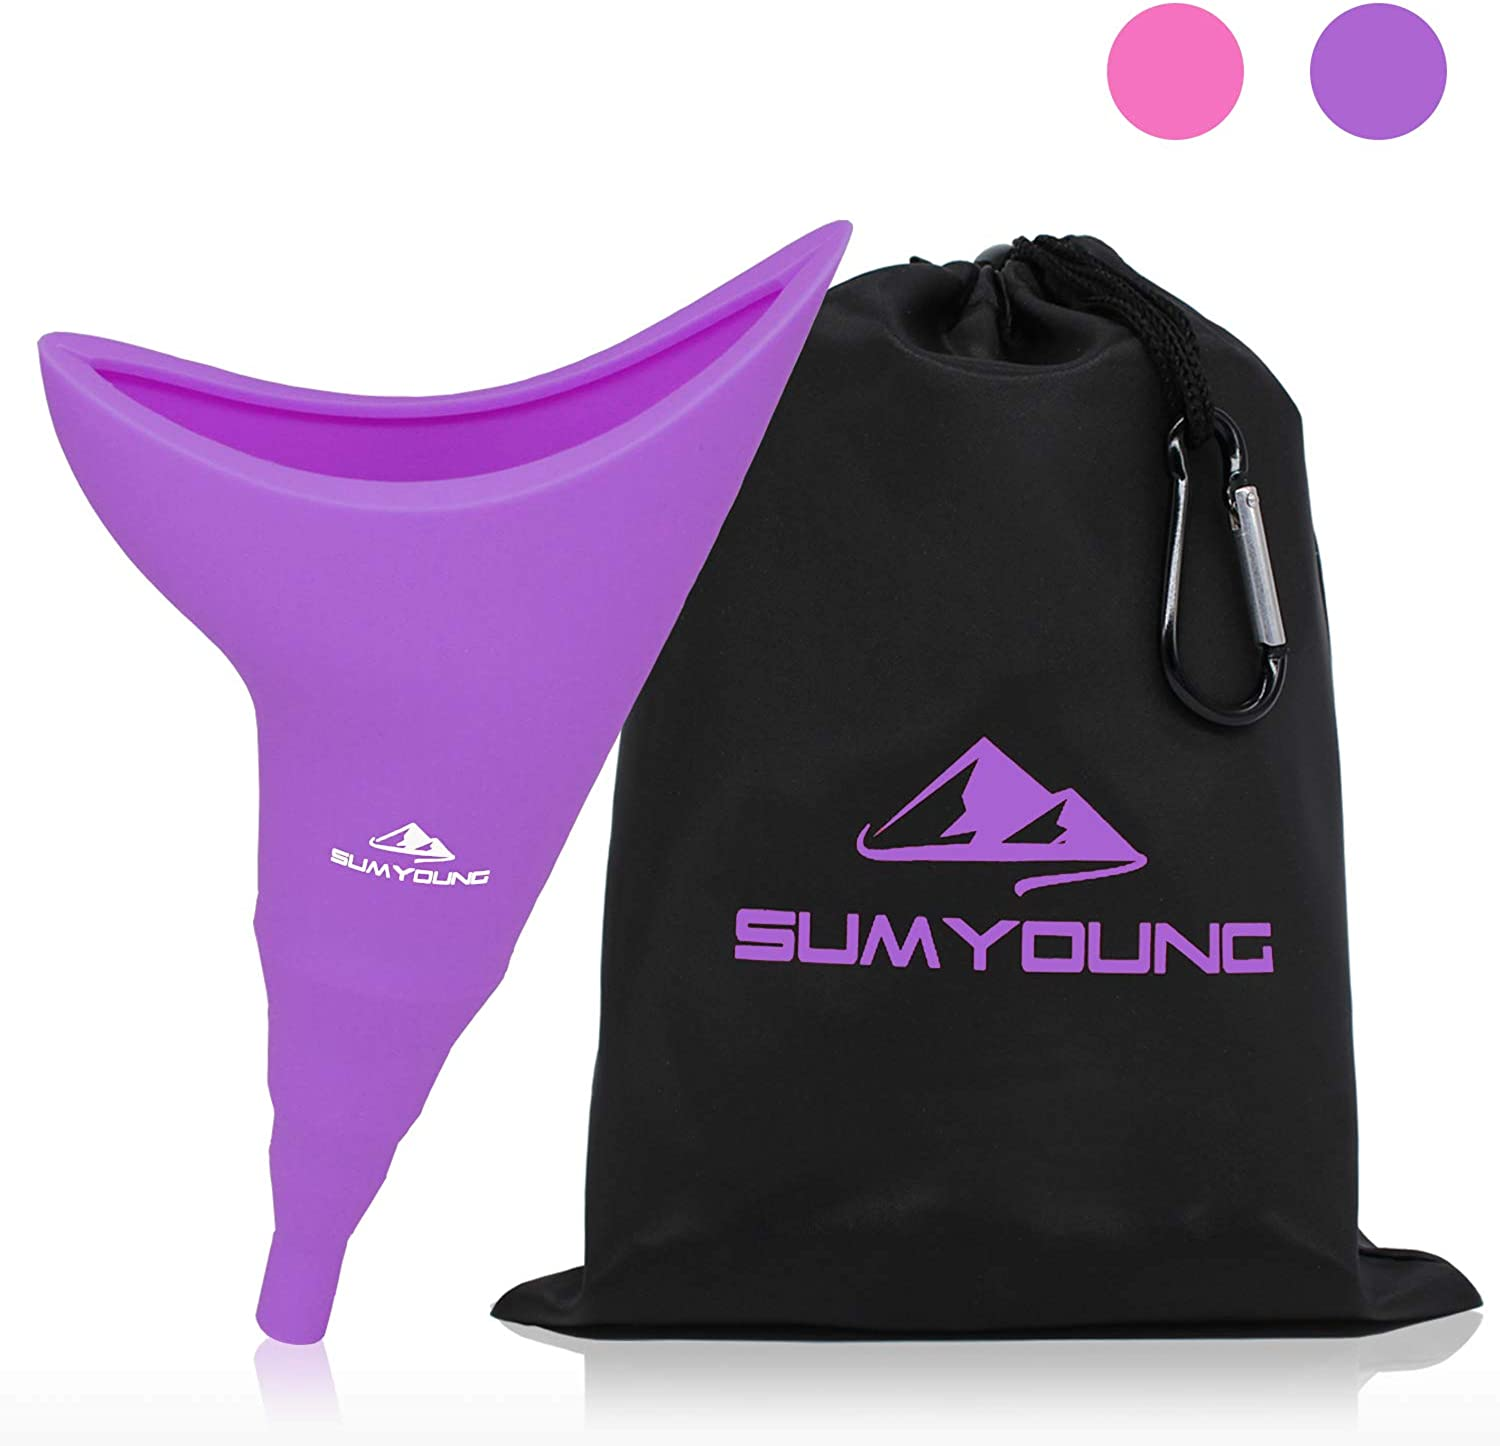 Female Urination Device, Foolproof Female Urinal Allows Women to Pee Standing Up, Portable, Compact, Lightweight Design for Camping, Hiking, Music Festivals, with Drawstring Bag and Carabiner